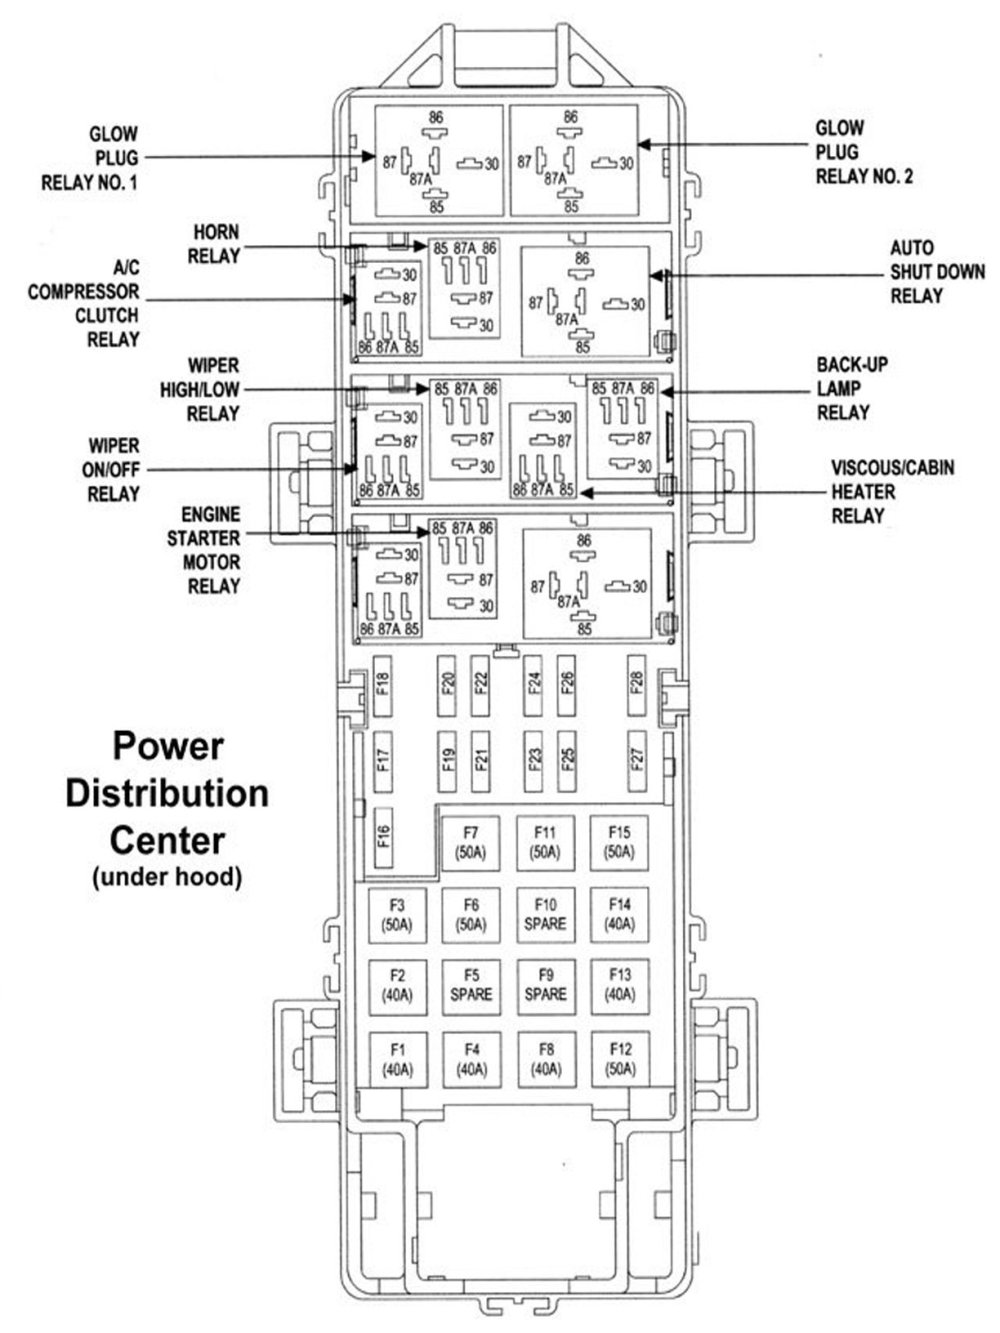 medium resolution of 1997 jeep grand cherokee fuse diagram smart wiring diagrams u2022 2003 dodge grand caravan headliner